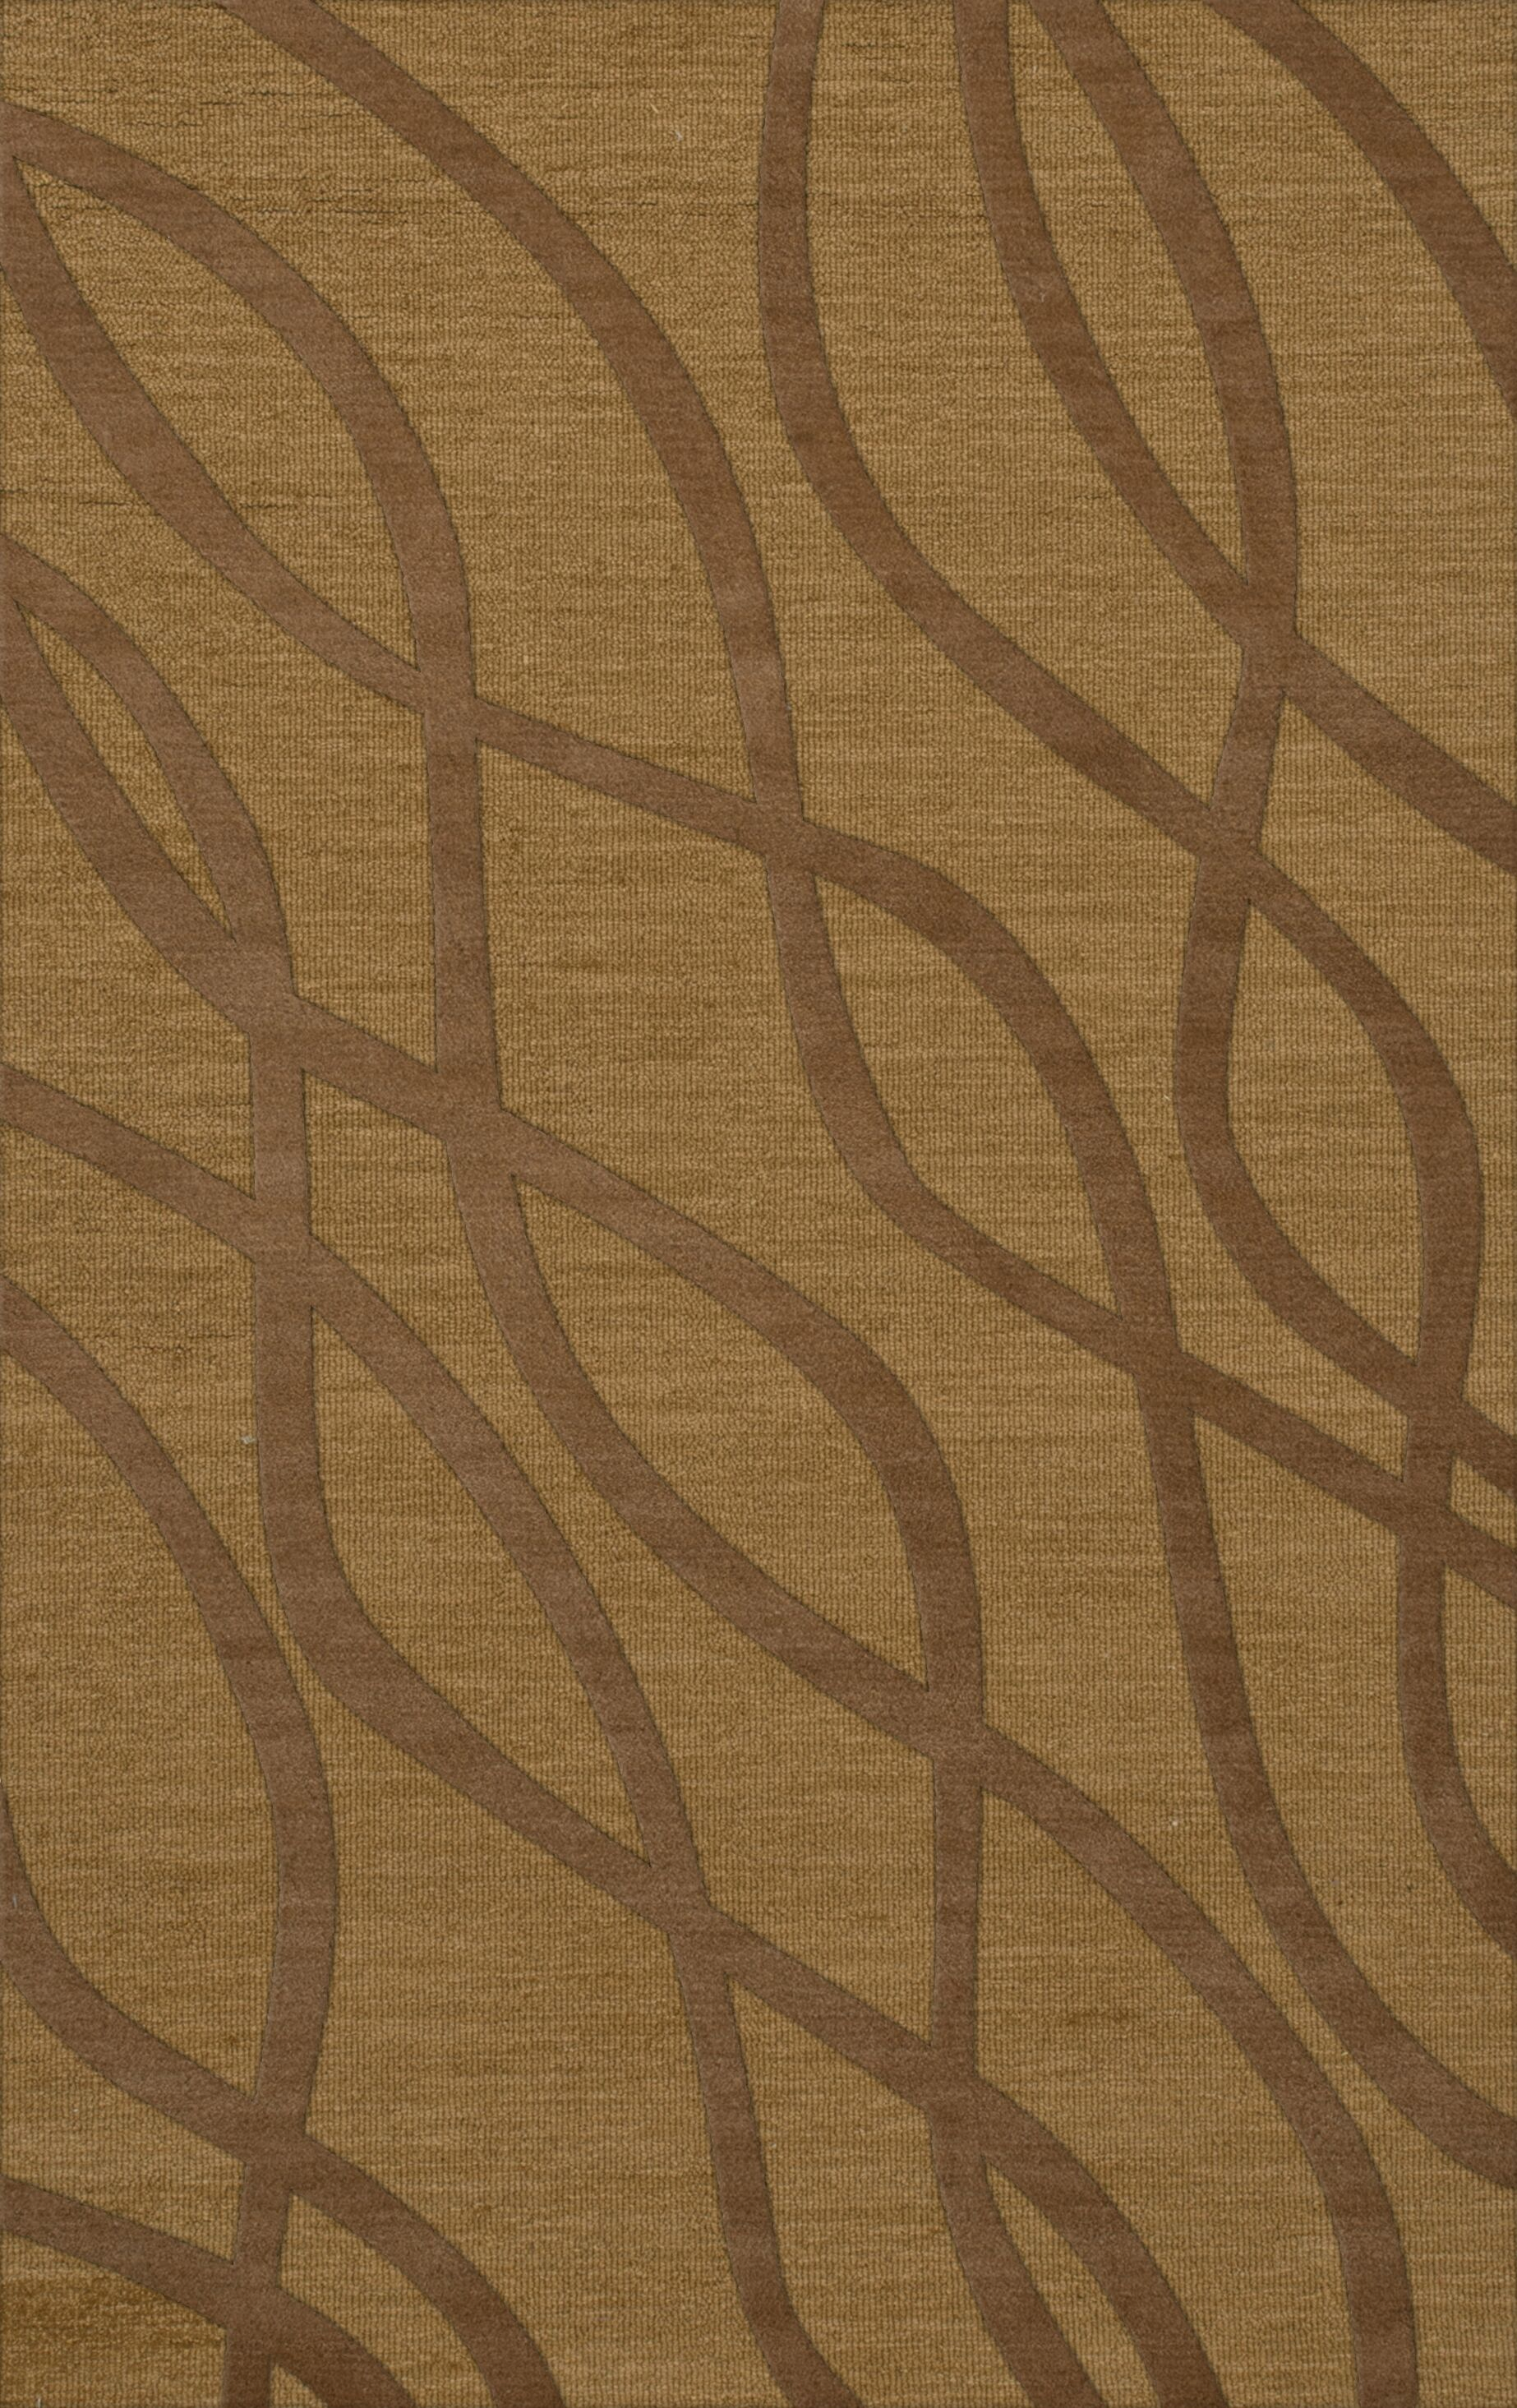 Dover Gold Dust Area Rug Rug Size: Rectangle 9' x 12'